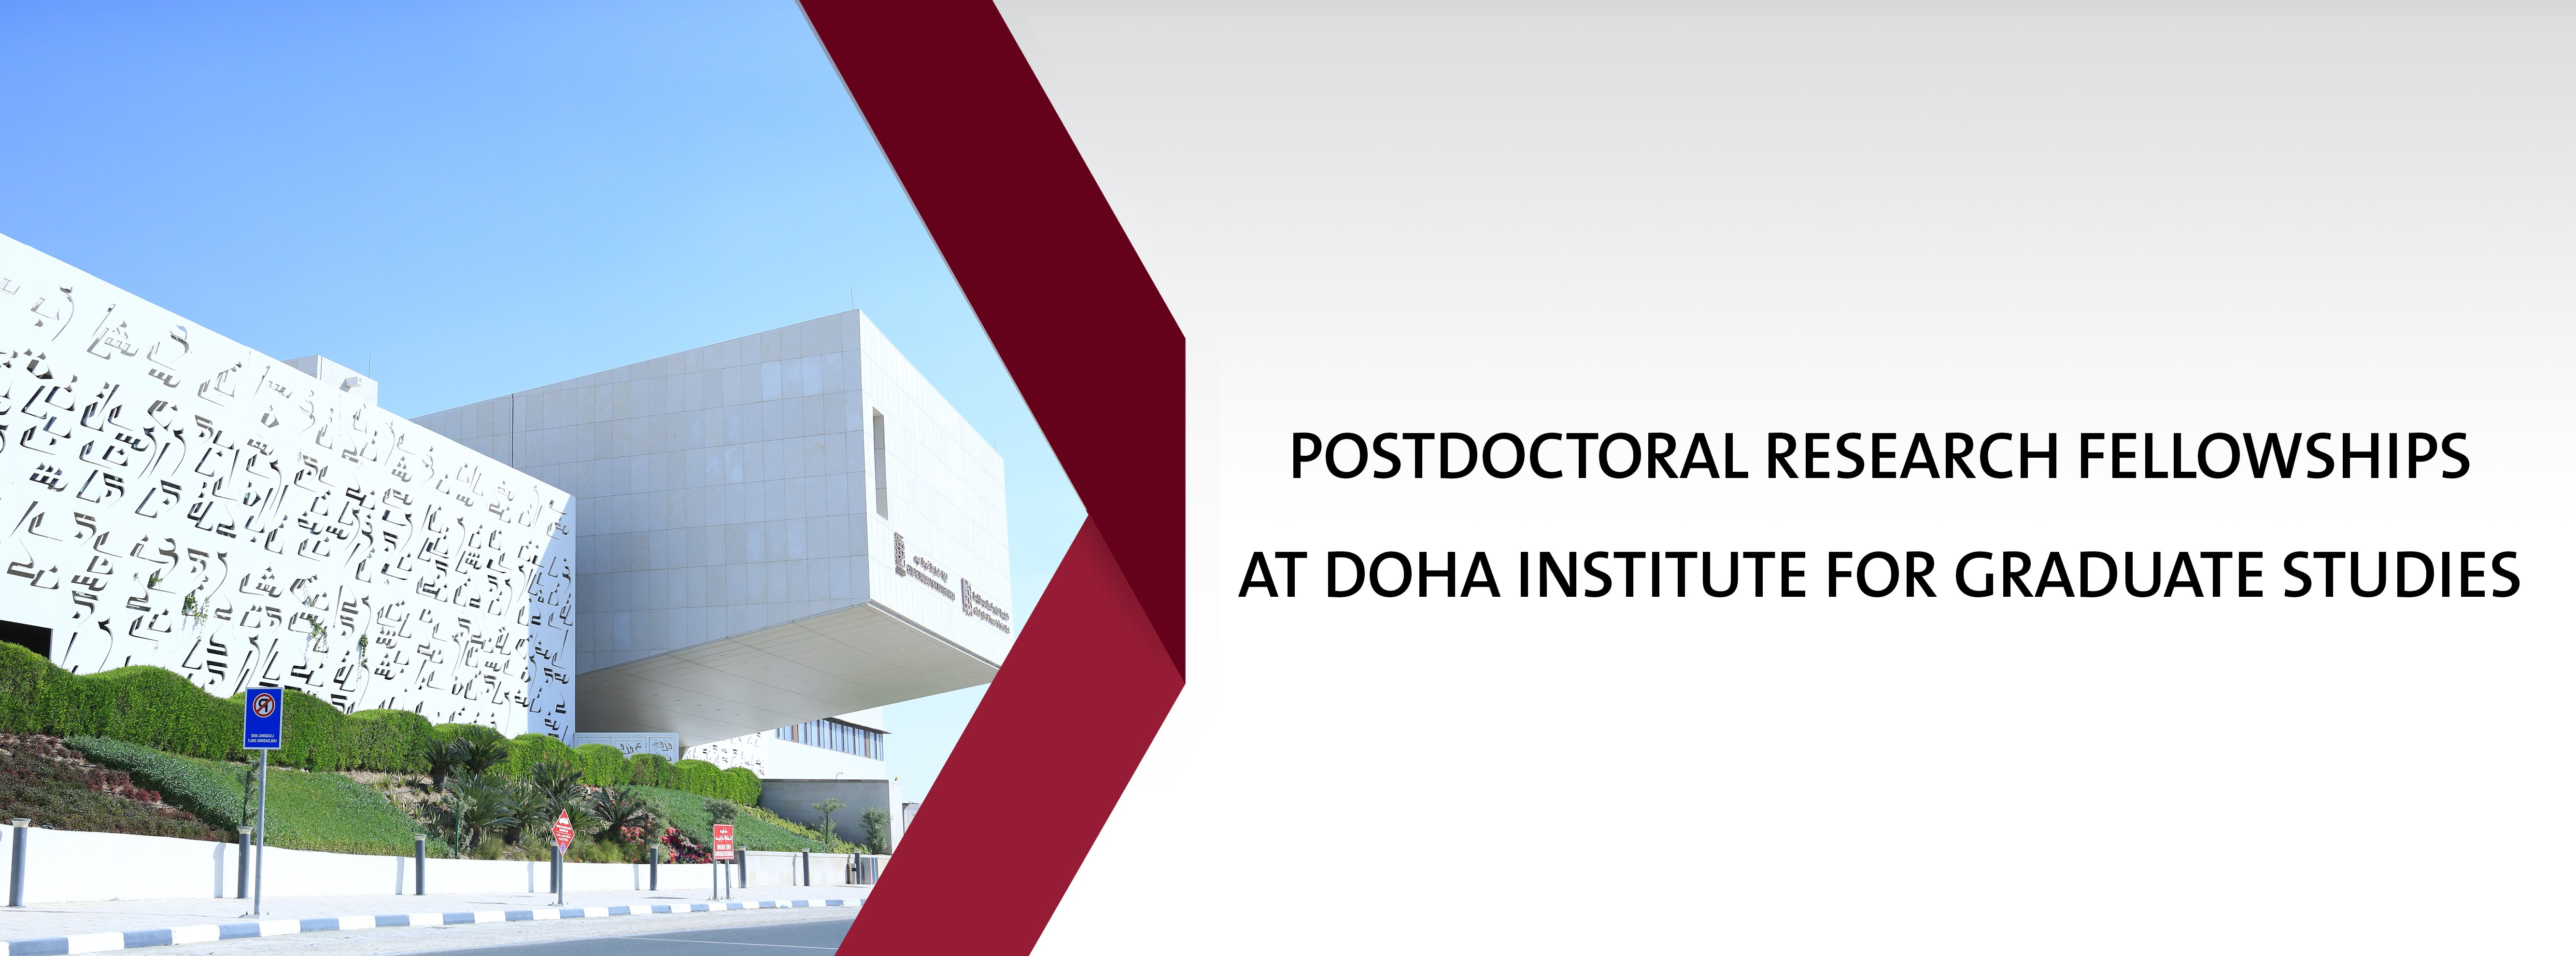 Postdoctoral Research Fellowships at Doha Institute for Graduate Studies